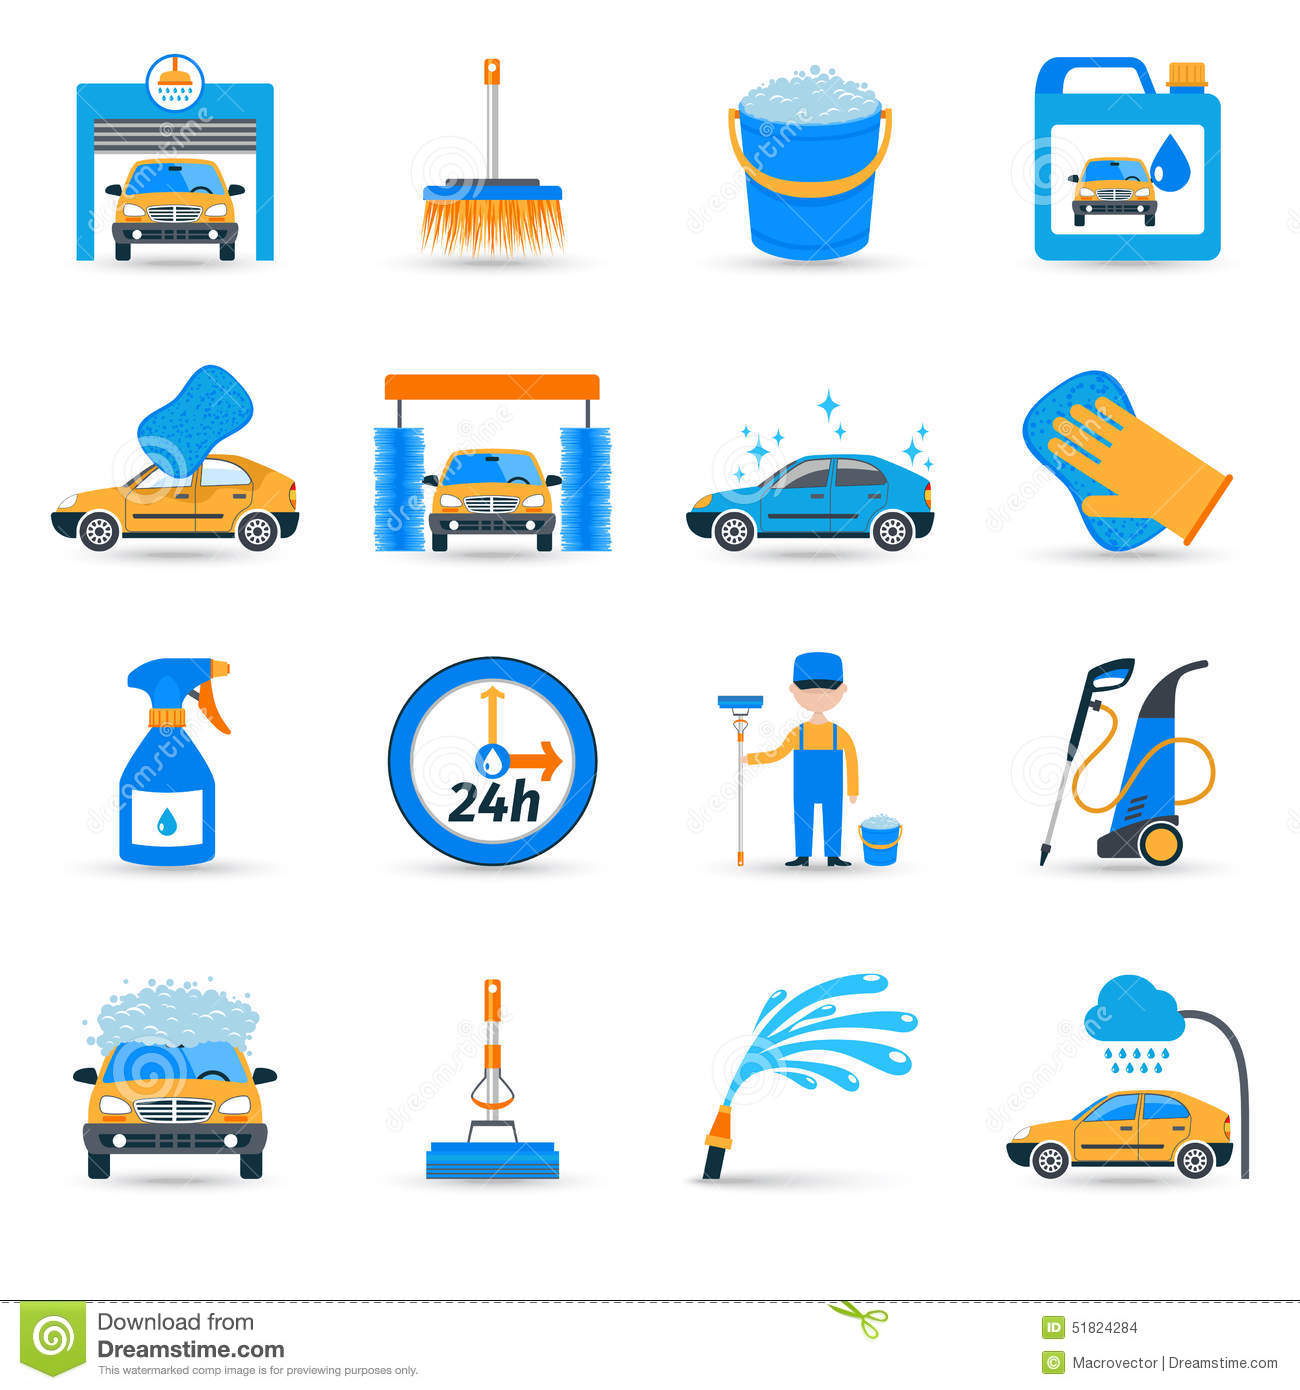 Car Wash Service Icons Set Stock Vector - Image: 51824284